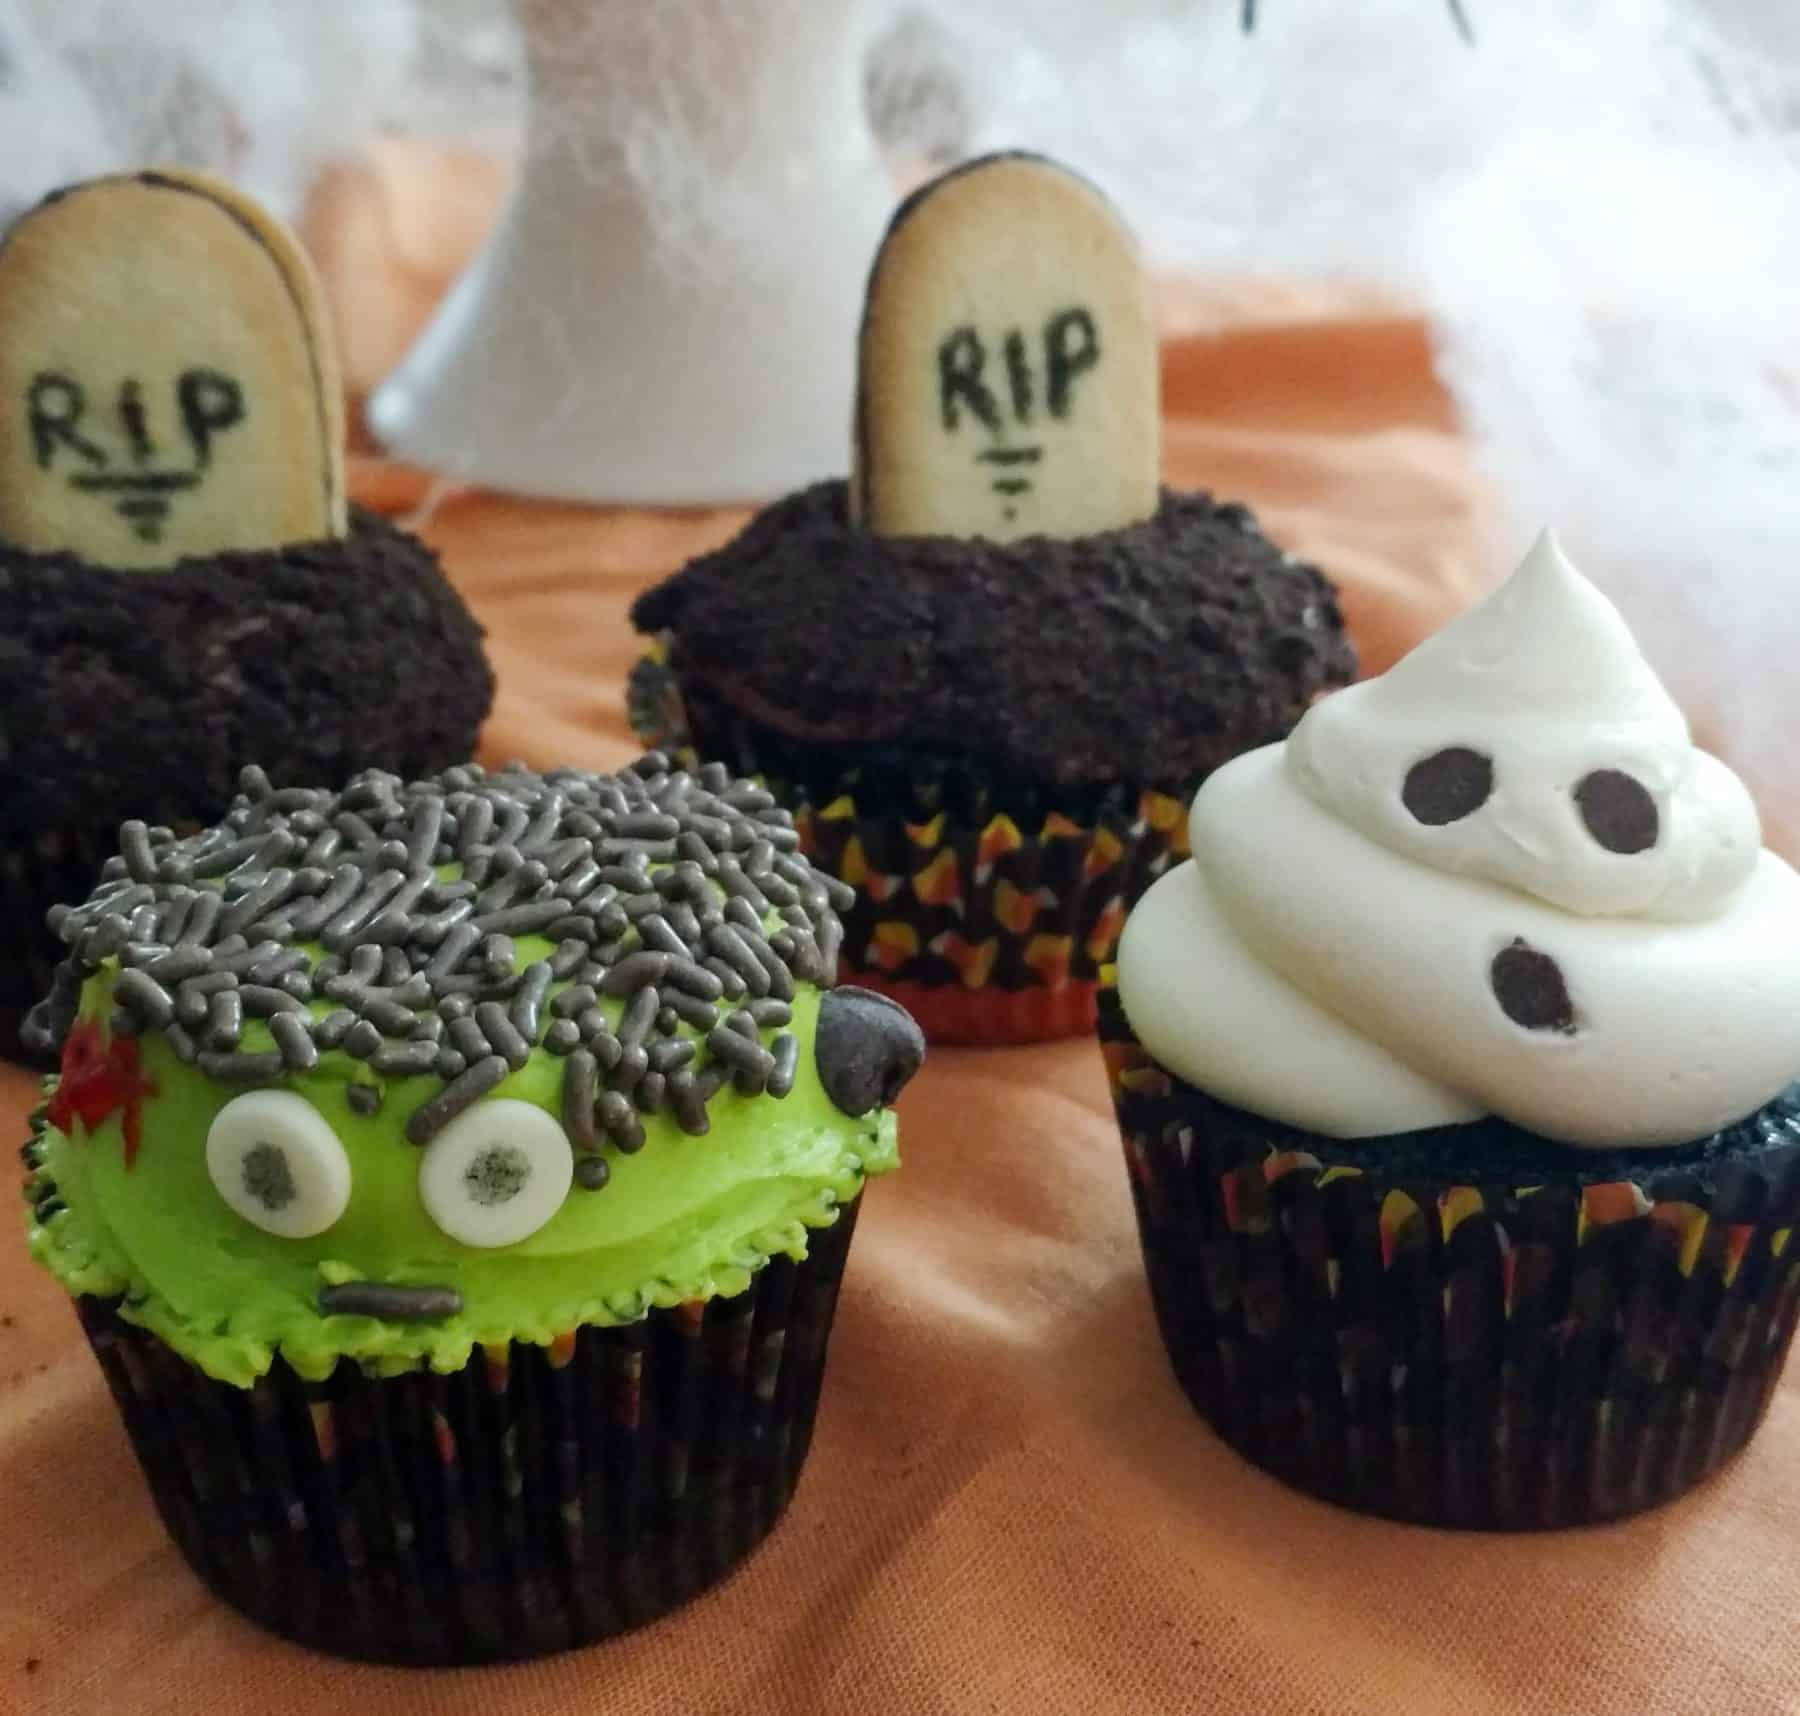 Halloween Themed Cupcakes  3 Easy To Make Halloween Themed Cupcakes Boston Girl Bakes